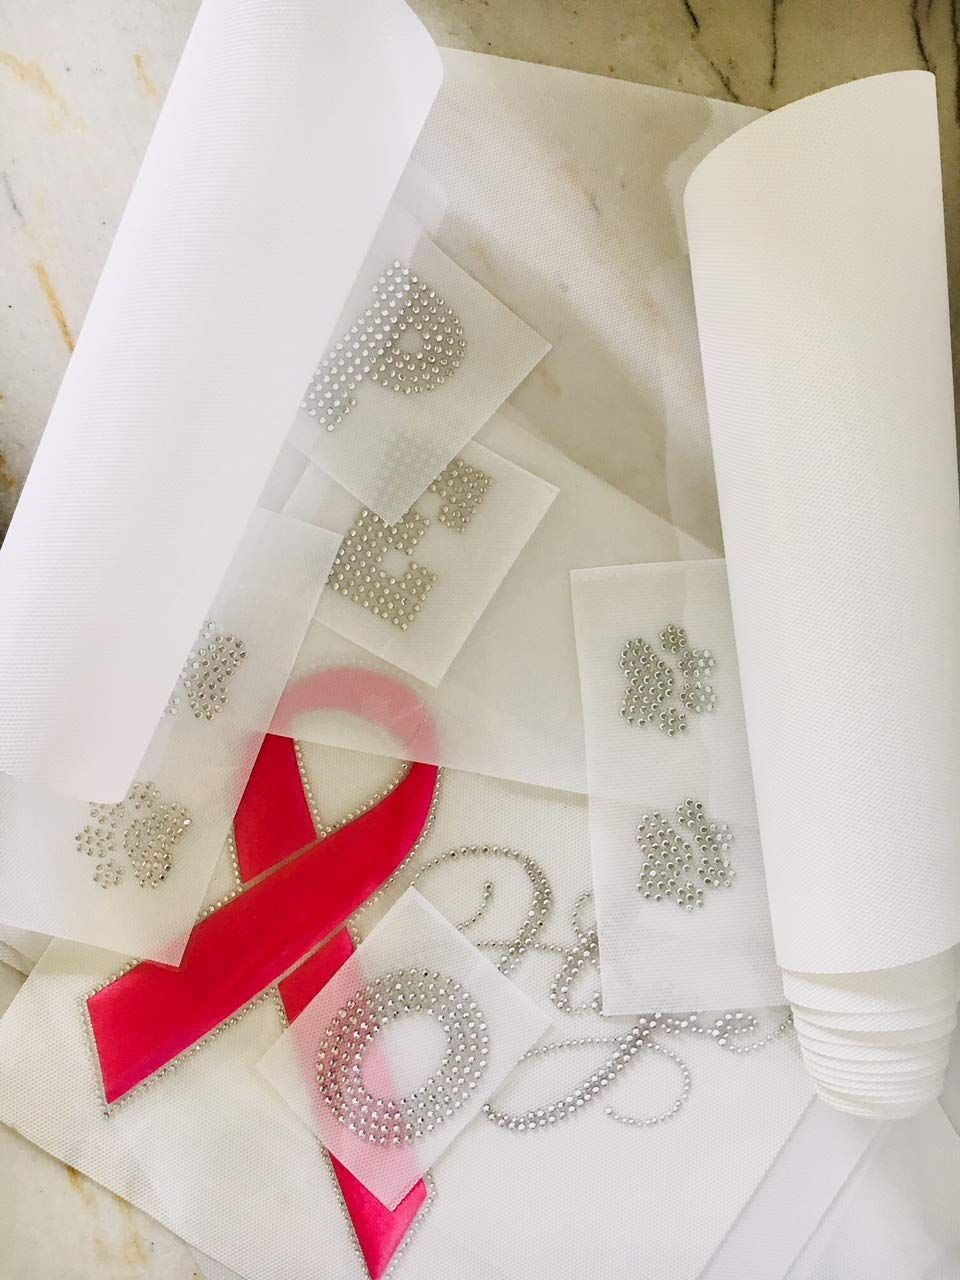 10 Ft X 12 Inch Hot Fix Iron On Rhinestone Sticky Transfer Film Paper Thick Tape Easy To Use In Continuous Roll Wit Star Decals Sewing Crafts Transfer Paper